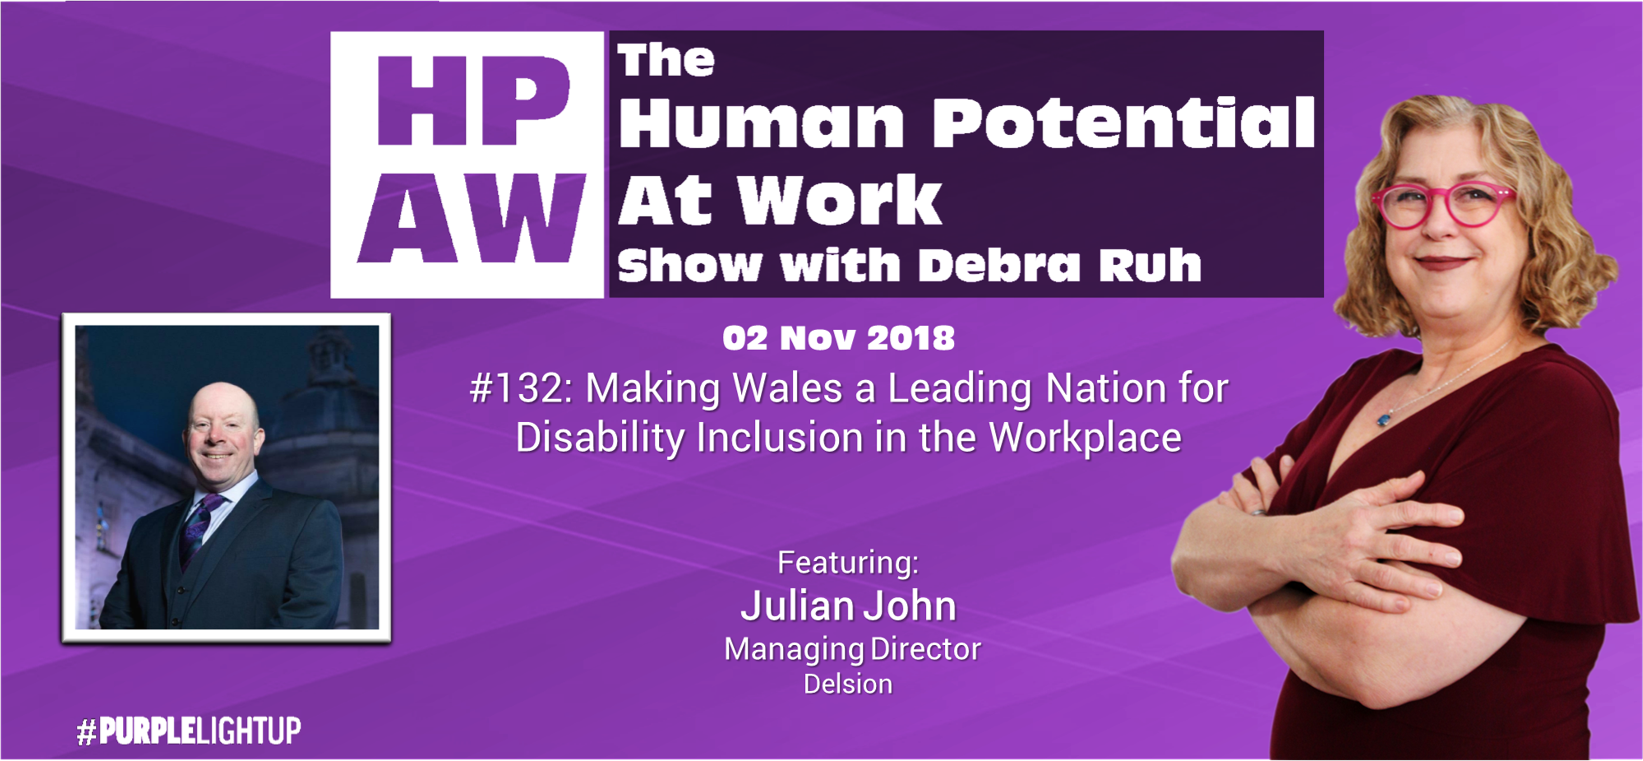 Episode Flyer for #132 Making Wales a Leading Nation for Disability Inclusion in the Workplace